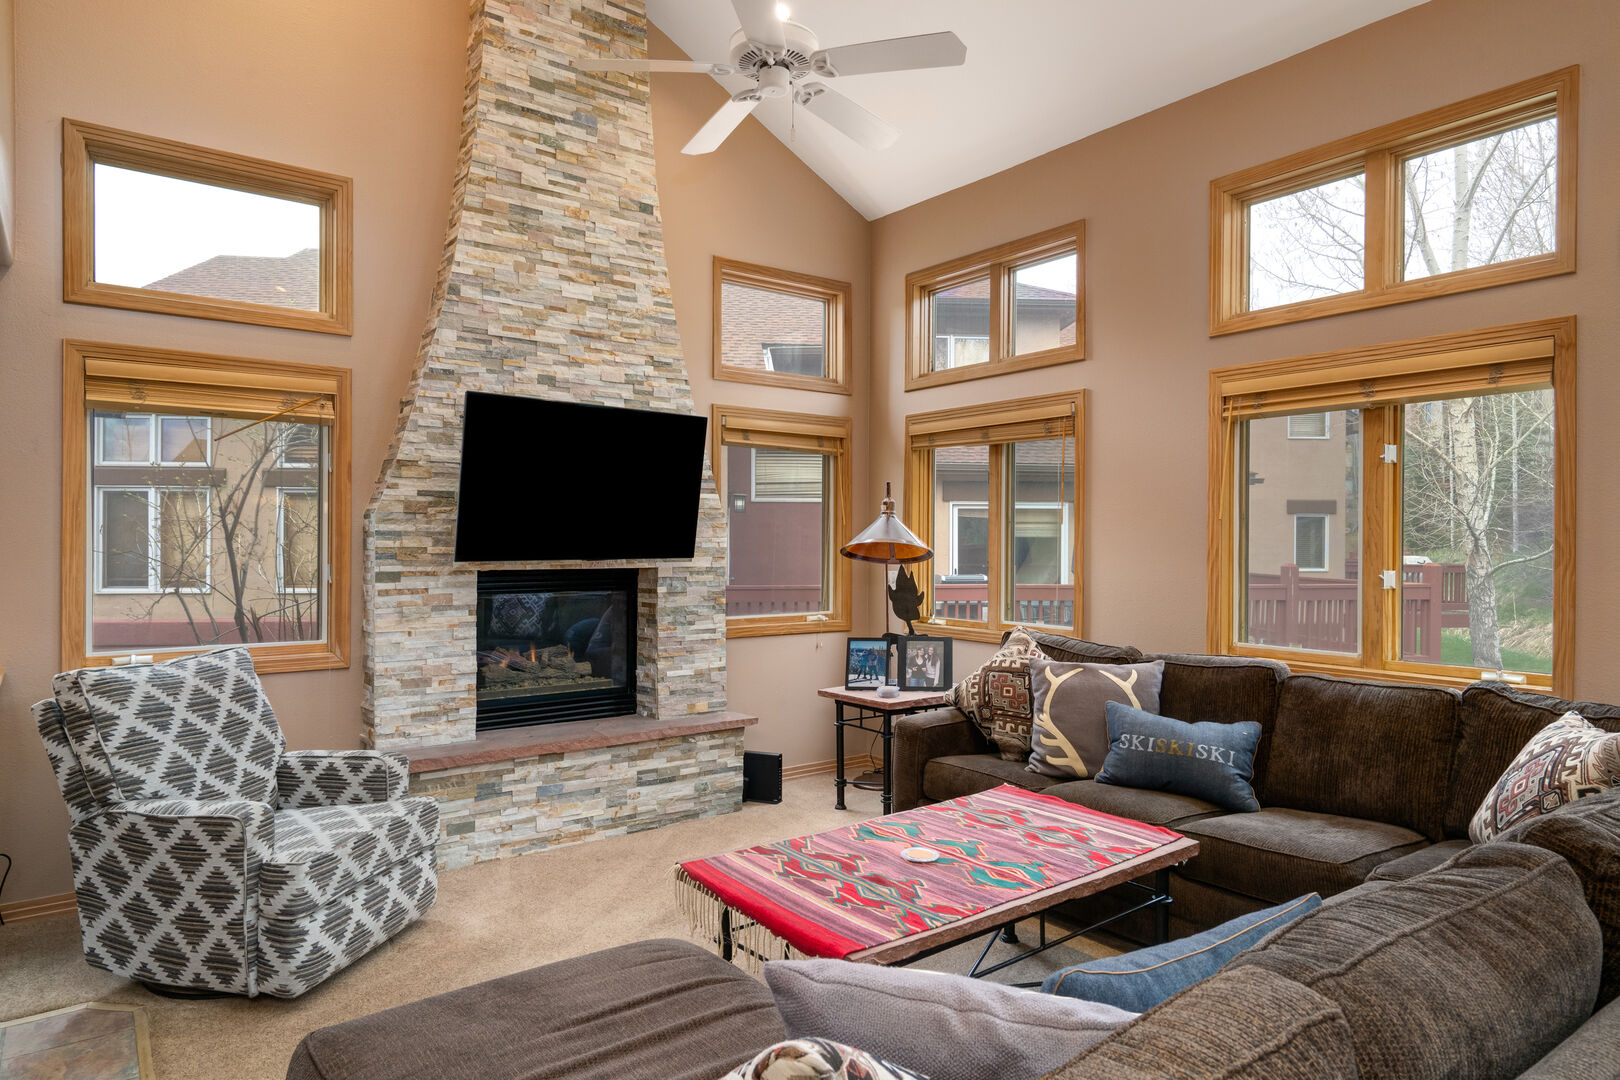 Spacious and comfortable living room with gas fireplace and large flat screen television